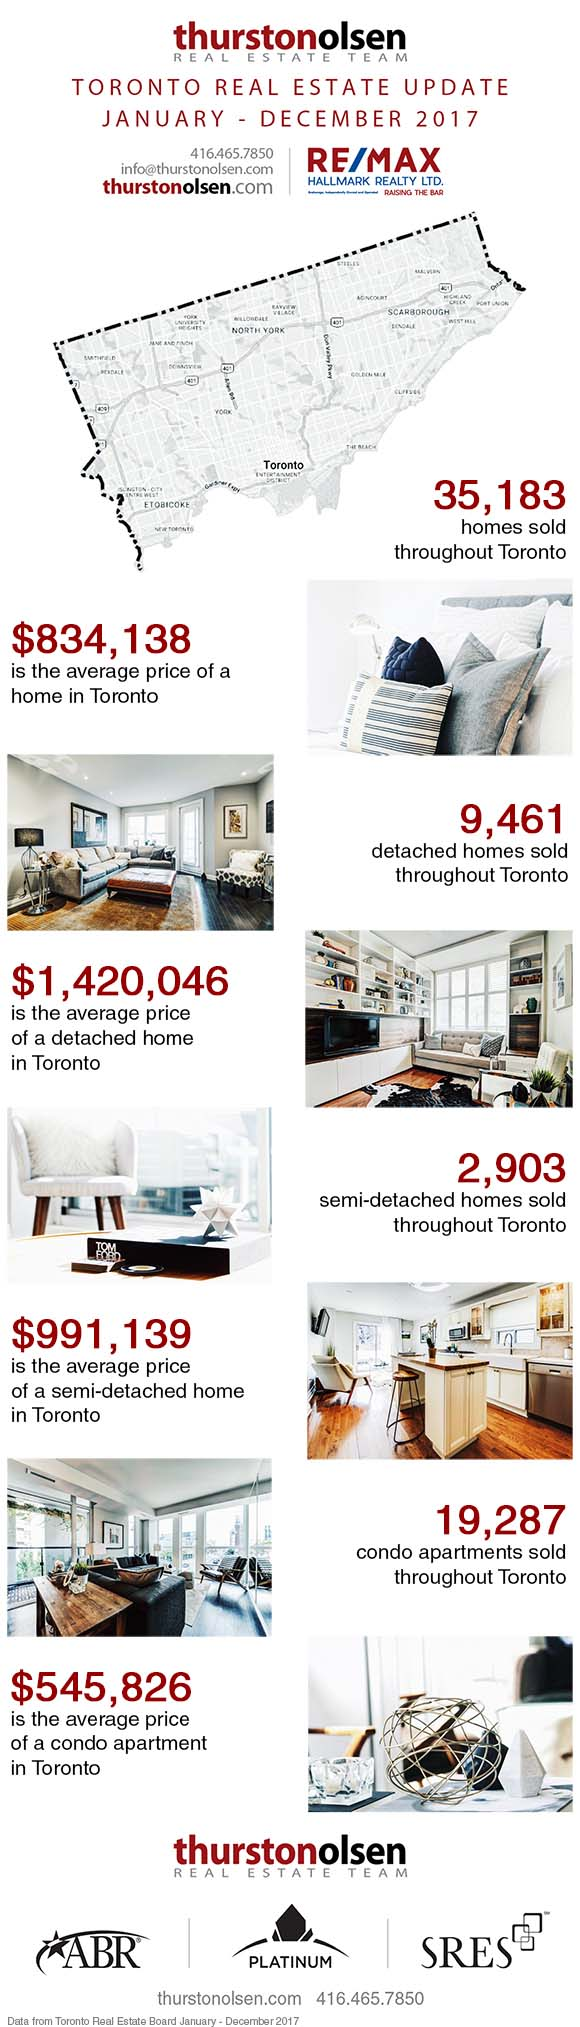 Toronto Real Estate Update